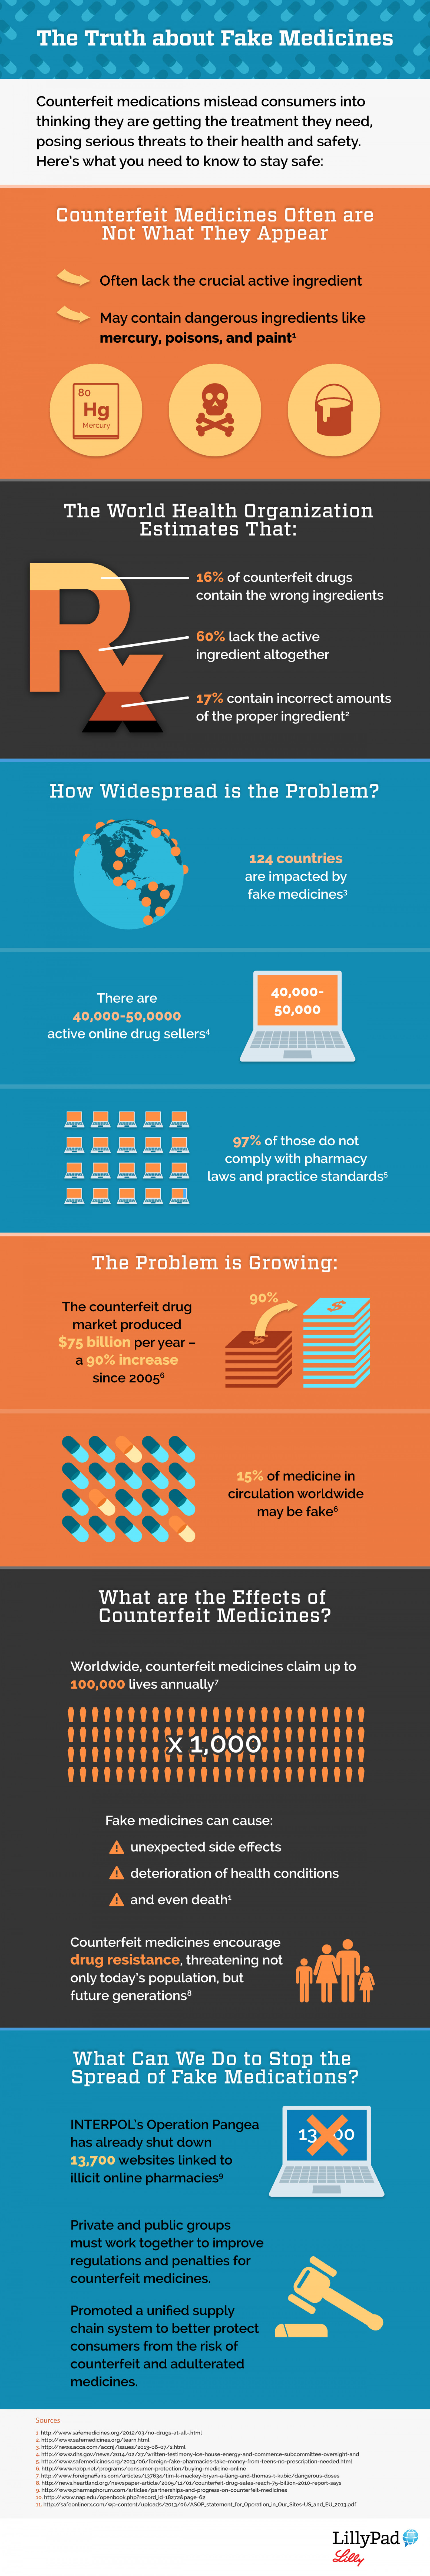 The Truth about Fake Medicines  Infographic